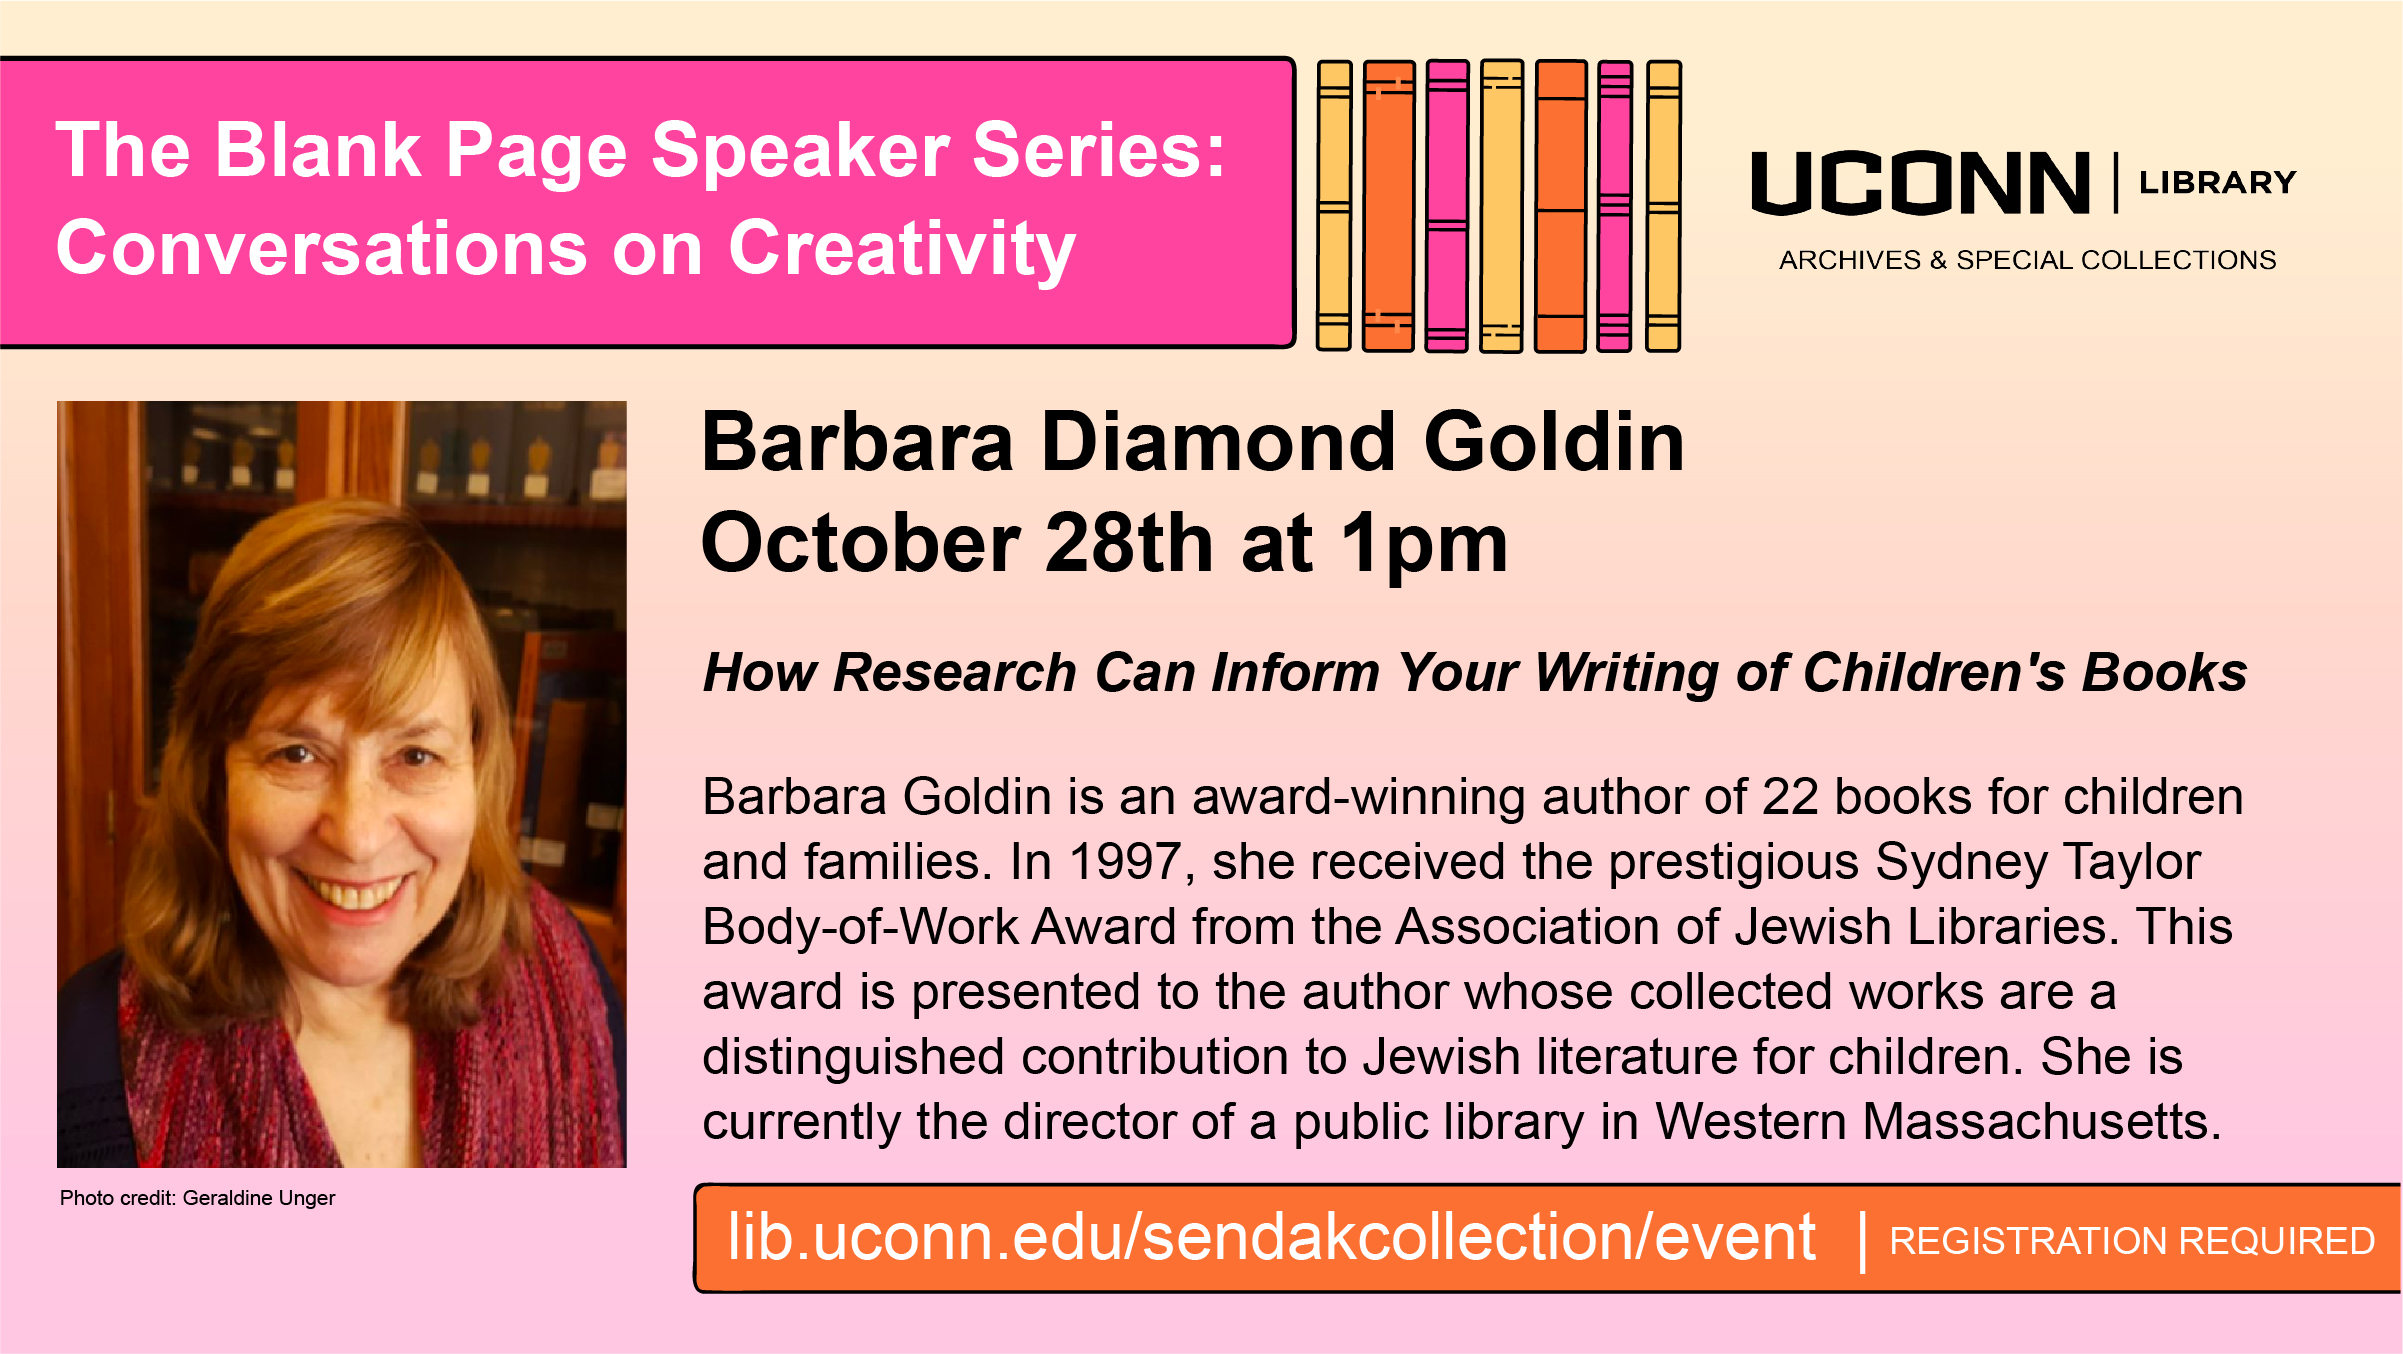 The Blank Page Speaker Series: Conversations on Creativity. Barbara Diamond Goldin October 28th at 1pm, How Research Can Inform Your Writing of Children's Books. Barbara Goldin is an award-winning author of 22 books for children and families. In 1997, she received the prestigious Sydney Taylor Body-of-Work Award from the Association of Jewish Libraries. This award is presented to the author whose collected works are a distinguished contribution to Jewish literature for children. She is currently the director of a public library in Western Massachusetts. lib.uconn.edu/sendakcollection/event | Registration Required.